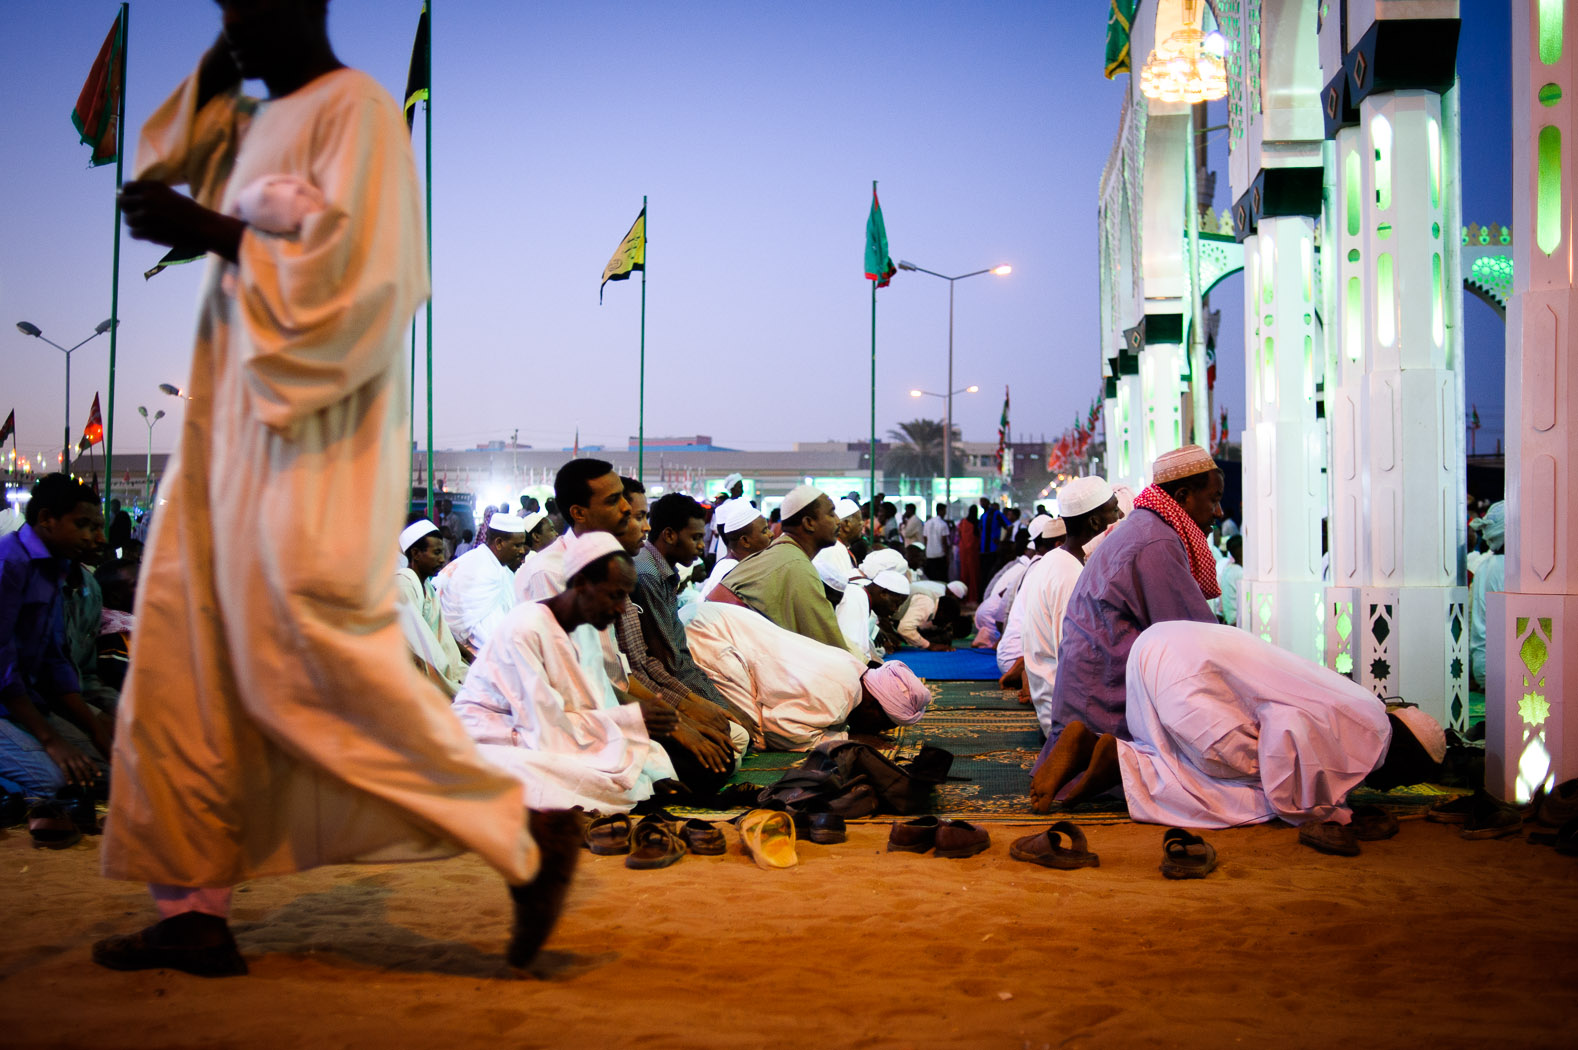 Muslims pray in Omdurman during the  Mawlid celebrations for the birthday of the Prophet Mohamed.